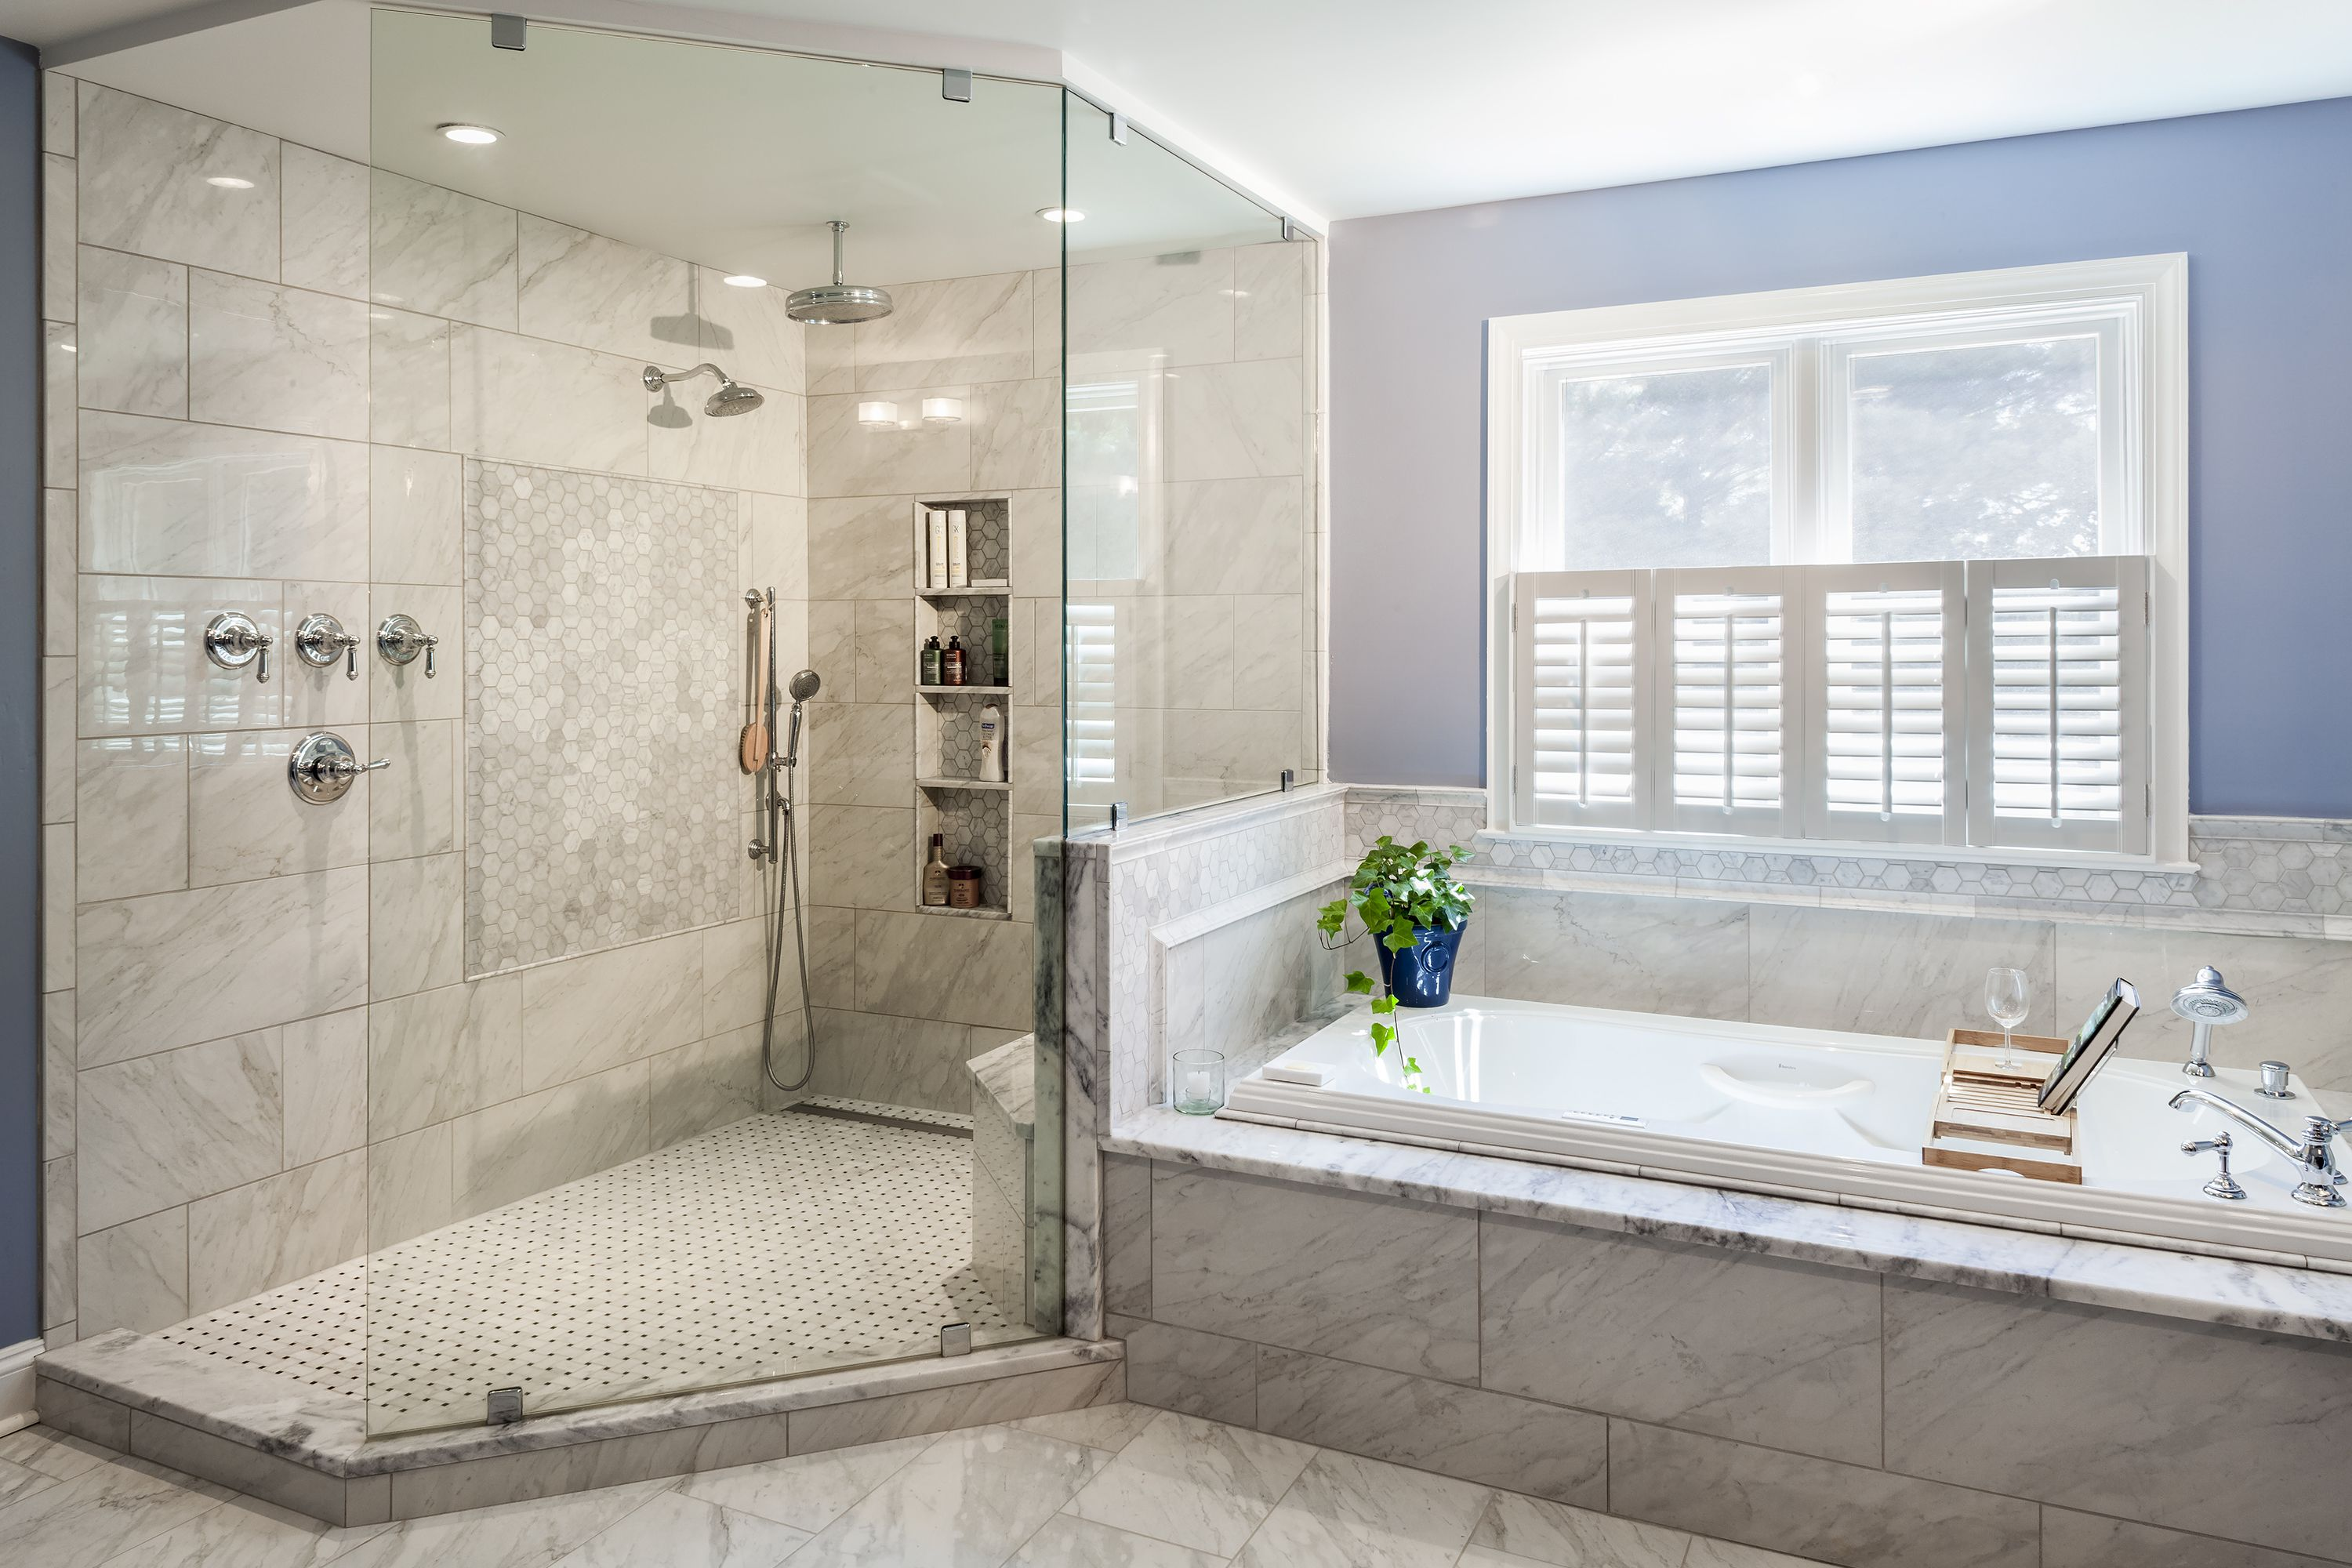 Bathroom Renovation Costs Bathroom Renovation Cost Bathroom